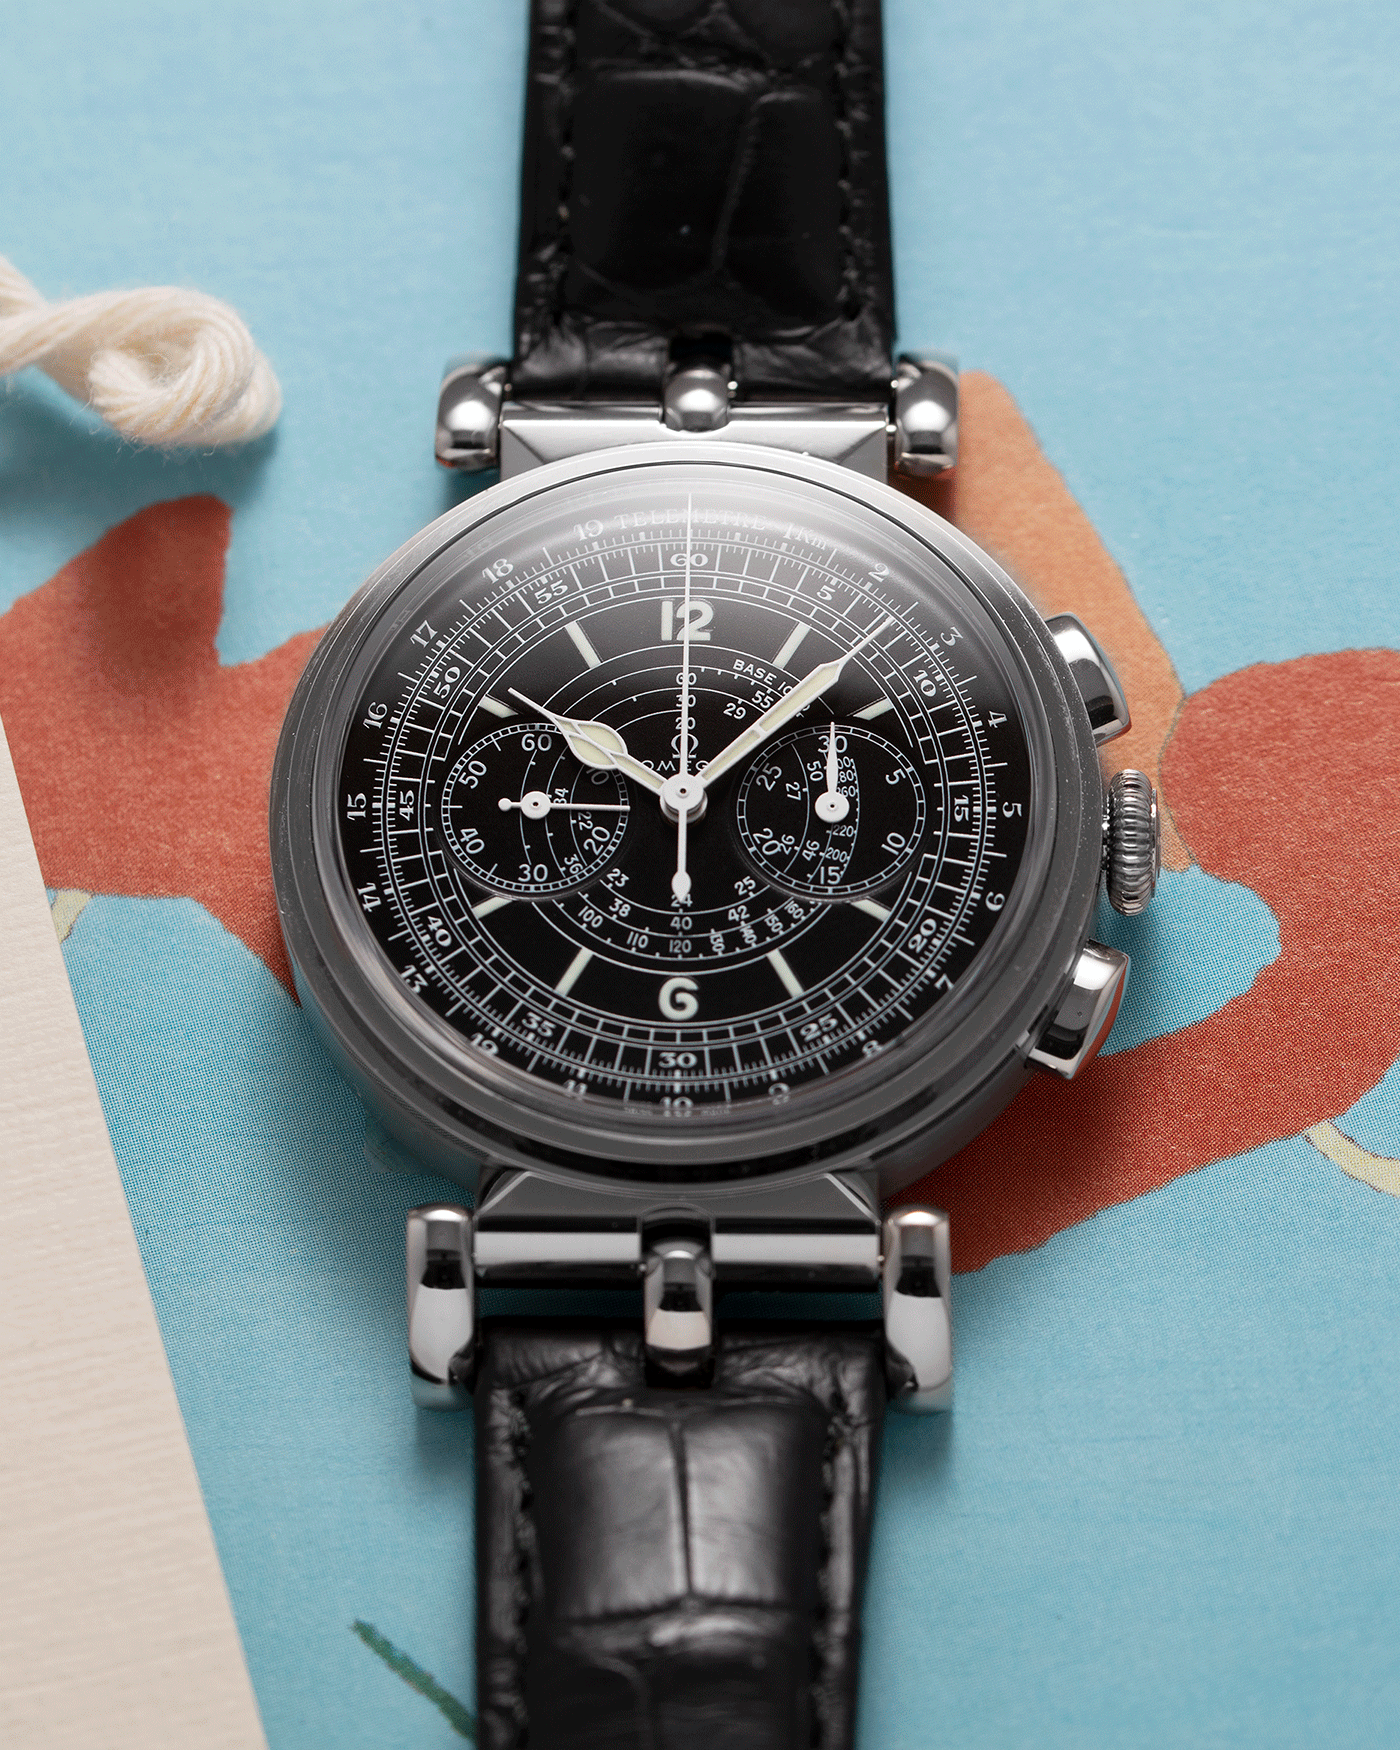 Brand: Omega Year: 2009 Model: Milestone Museum Collection 1941 Officer's Chronograph Material: 18k White Gold Movement: Manual Winding Omega in-house 3203 Case Diameter: 38.1mm wide 12mm thick Strap: Black Omega Alligator Strap with 18k White Gold Omega Tang Buckle